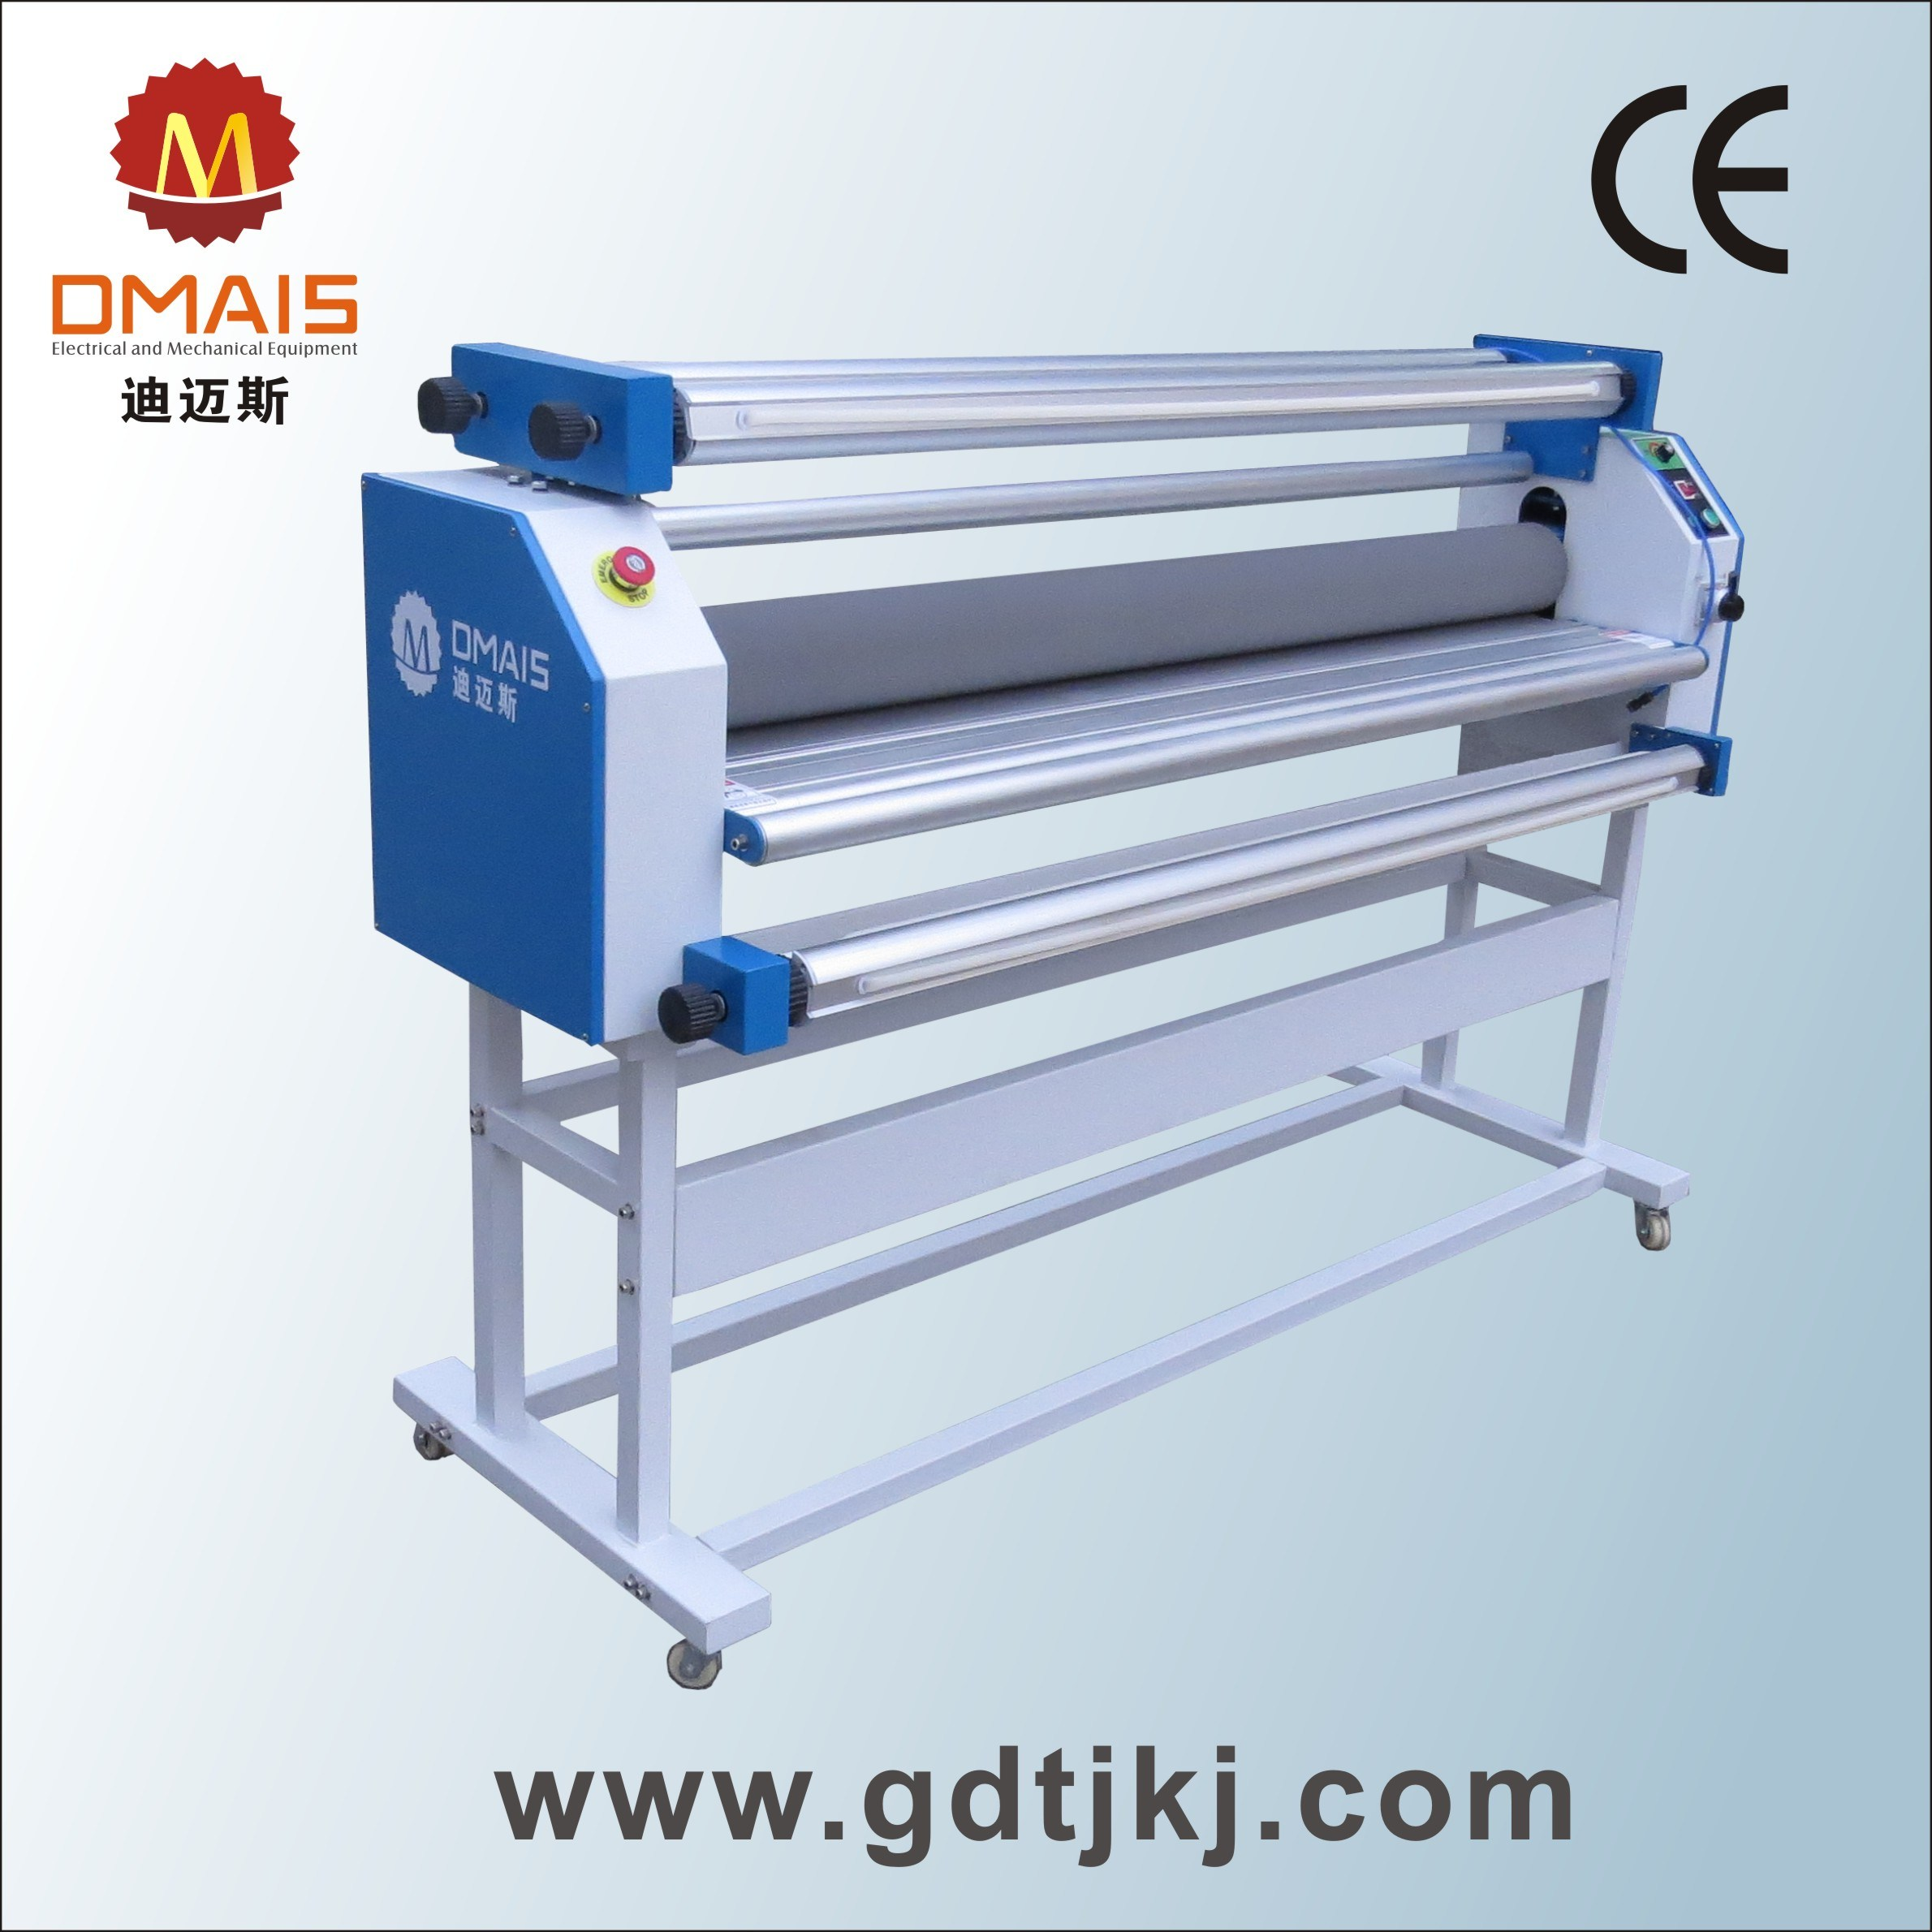 Dmais Series Full Automatic Laminator-Wide Format Laminating Machine